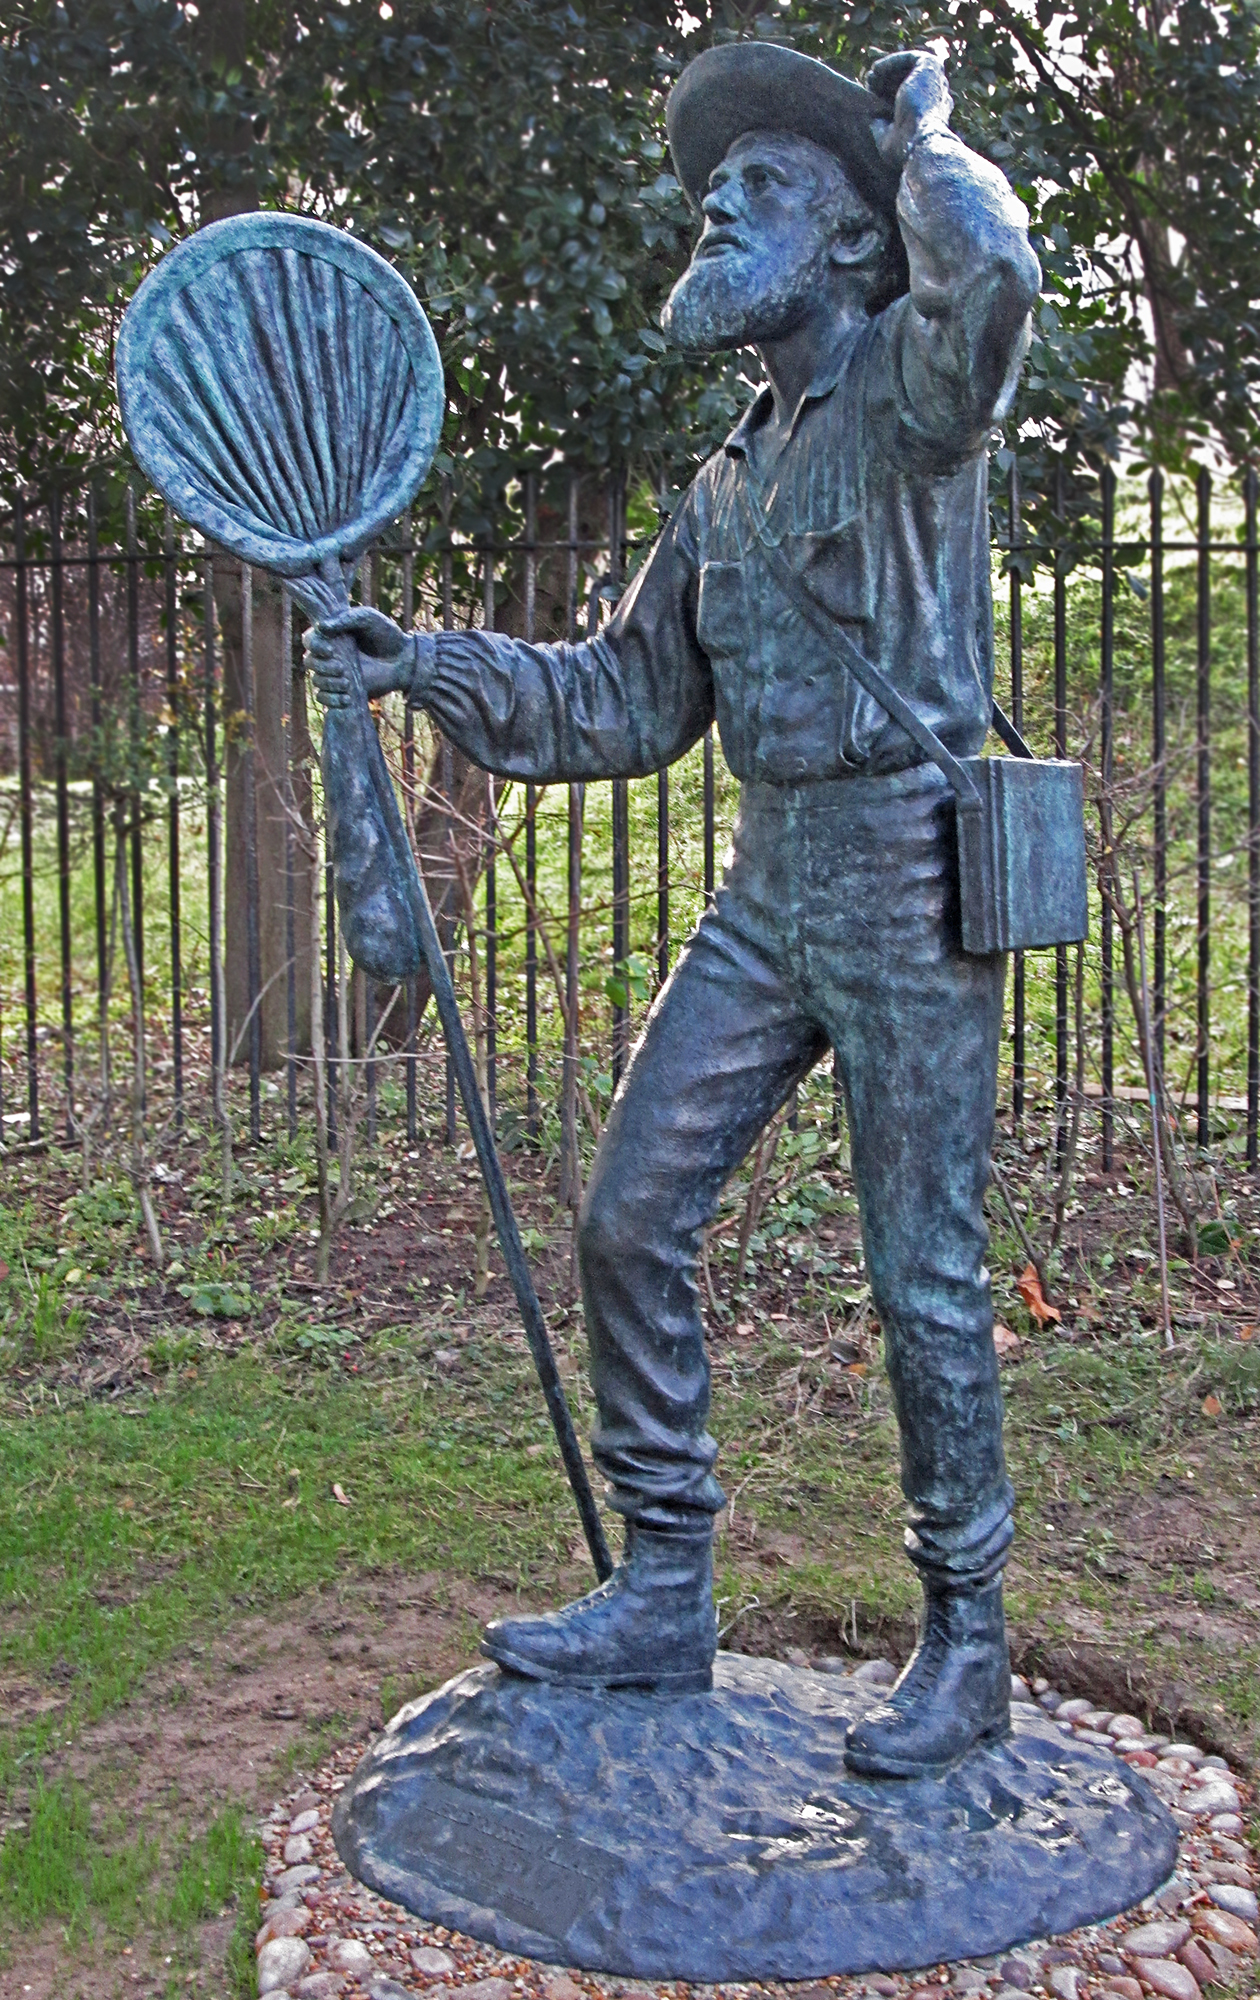 Statue in bronze of naturalist Alfred Russel Wallace (1823-1913) by Anthony Smith. He is looking up at a bronze model of a Wallace's golden birdwing butterfly (Ornithoptera croesus). The statue was commissioned by the Wallace Memorial Fund and was given to the London Natural History Museum, where it was unveiled by Sir David Attenborough on November 7th 2013 - the 100th anniversary of Wallace's death.